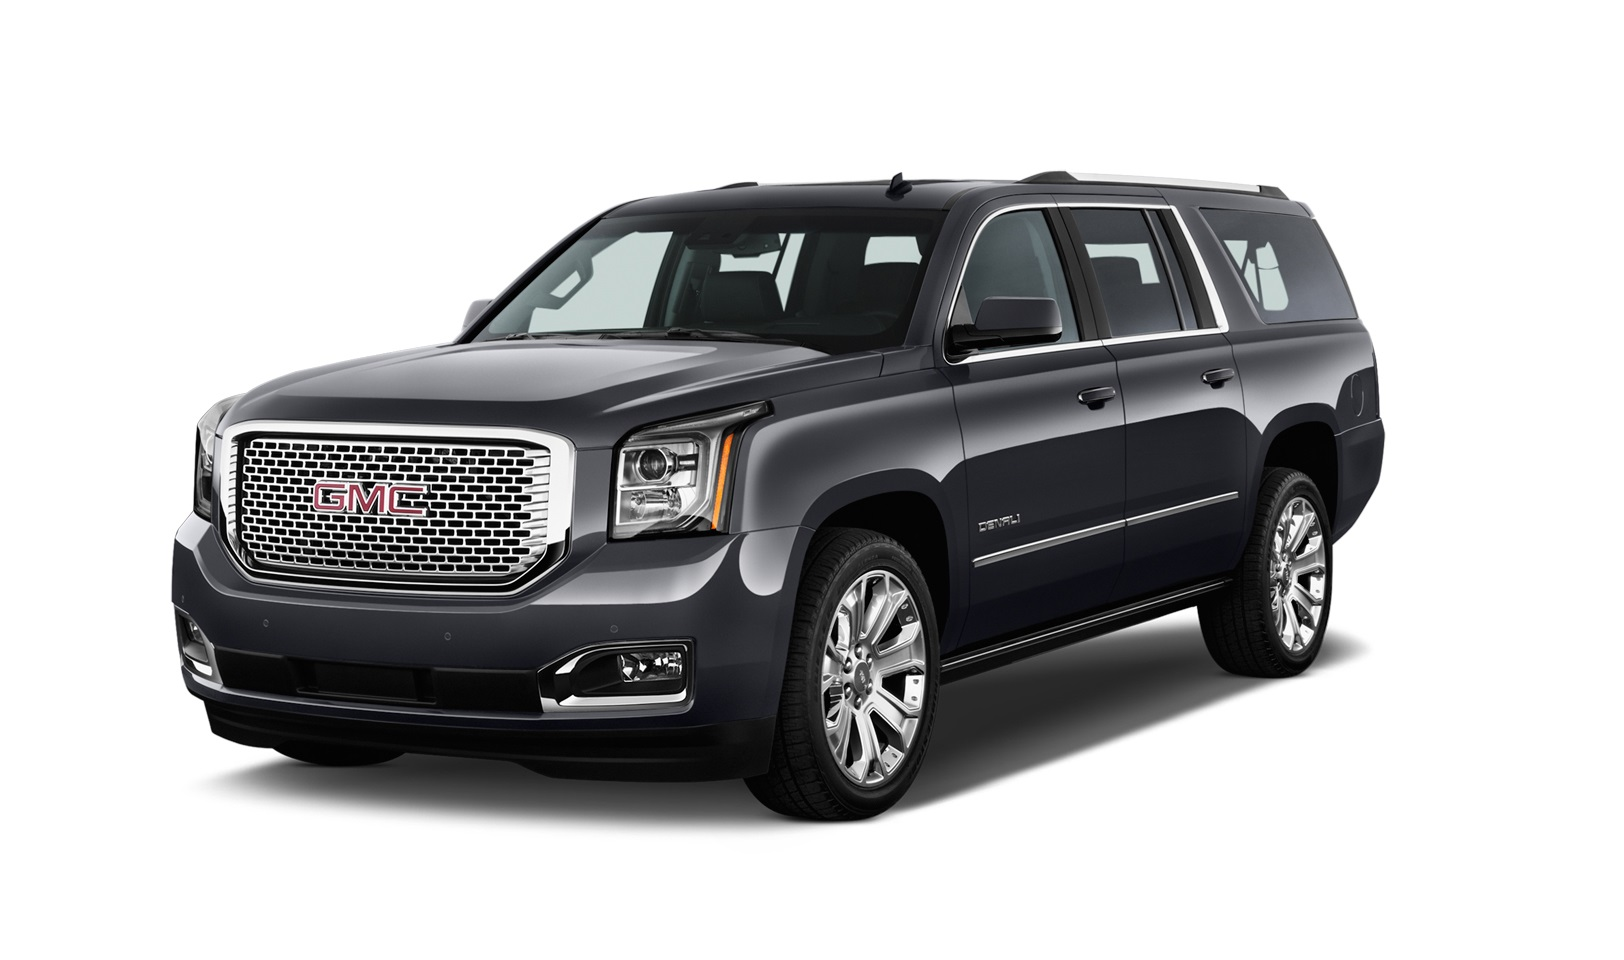 gmc yukon xl denali price in uae new gmc yukon xl denali. Black Bedroom Furniture Sets. Home Design Ideas